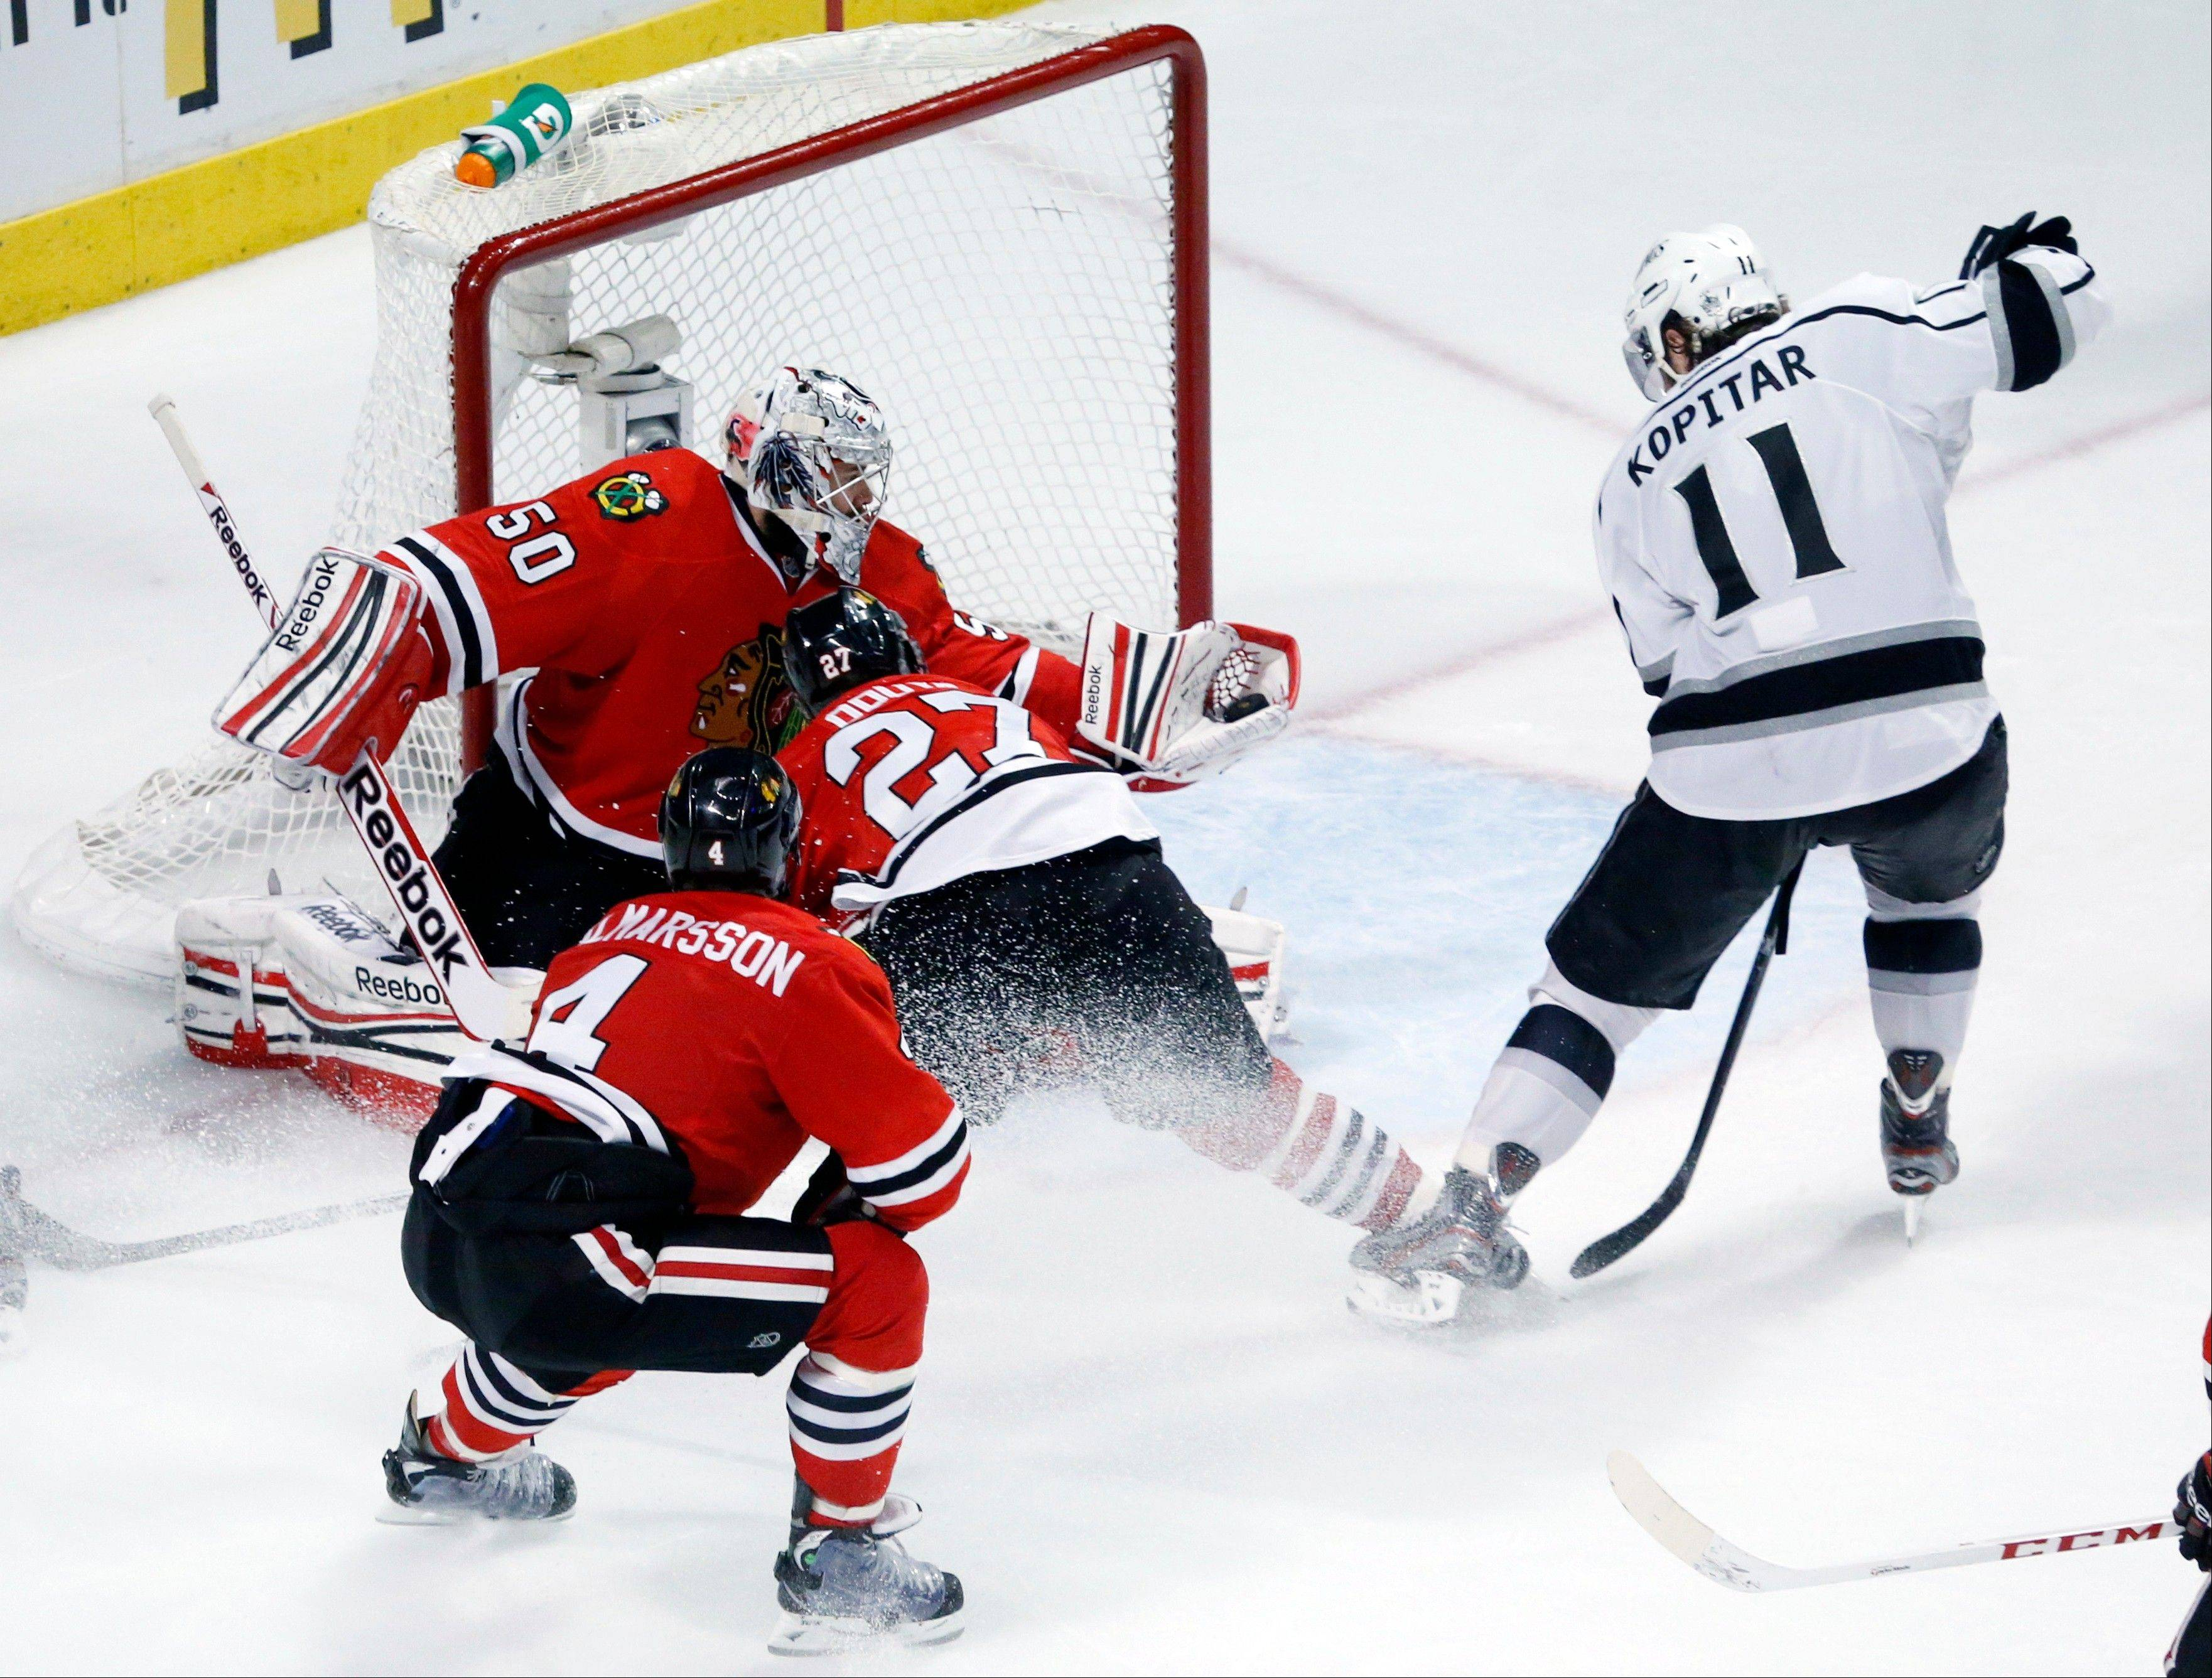 Chicago Blackhawks goalie Corey Crawford (50) grabs the puck in front of Los Angeles Kings center Anze Kopitar (11) during the first overtime period in Game 5 of the NHL hockey Stanley Cup playoffs Western Conference finals Saturday, June 8, 2013, in Chicago.